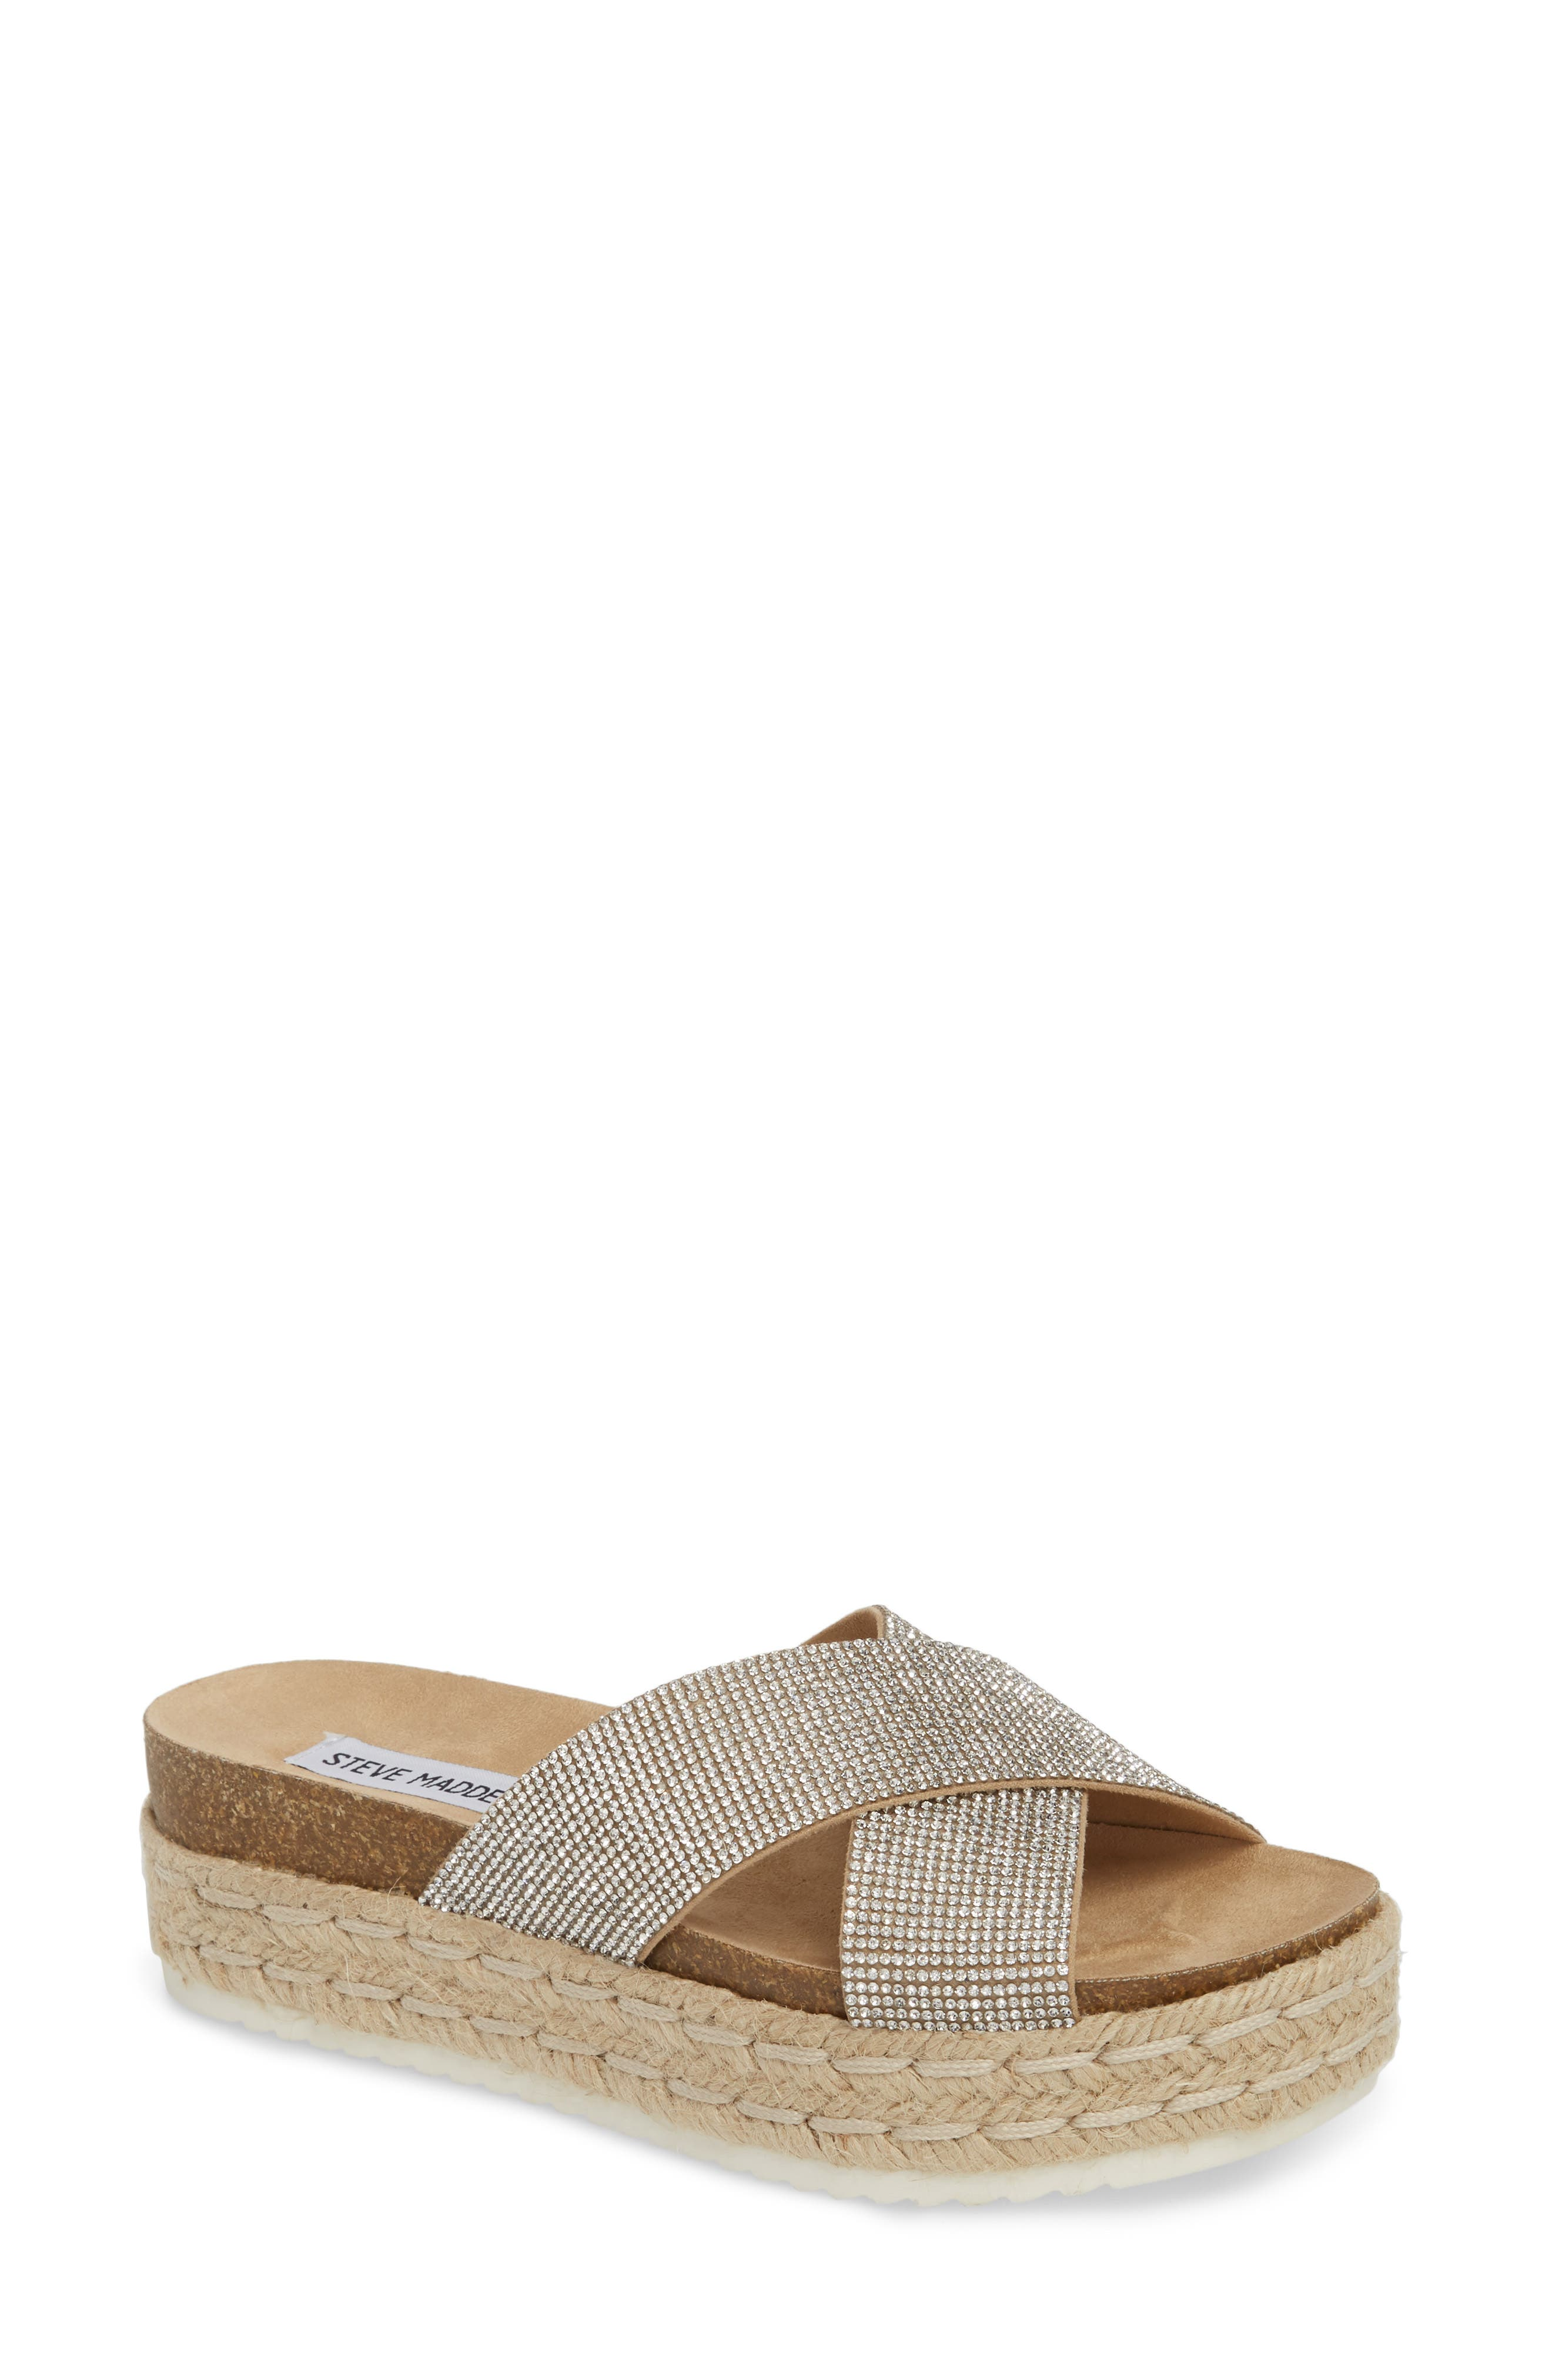 Sandals for Women On Sale, Straw, Leather, 2017, 3.5 5.5 7.5 8.5 Tod's